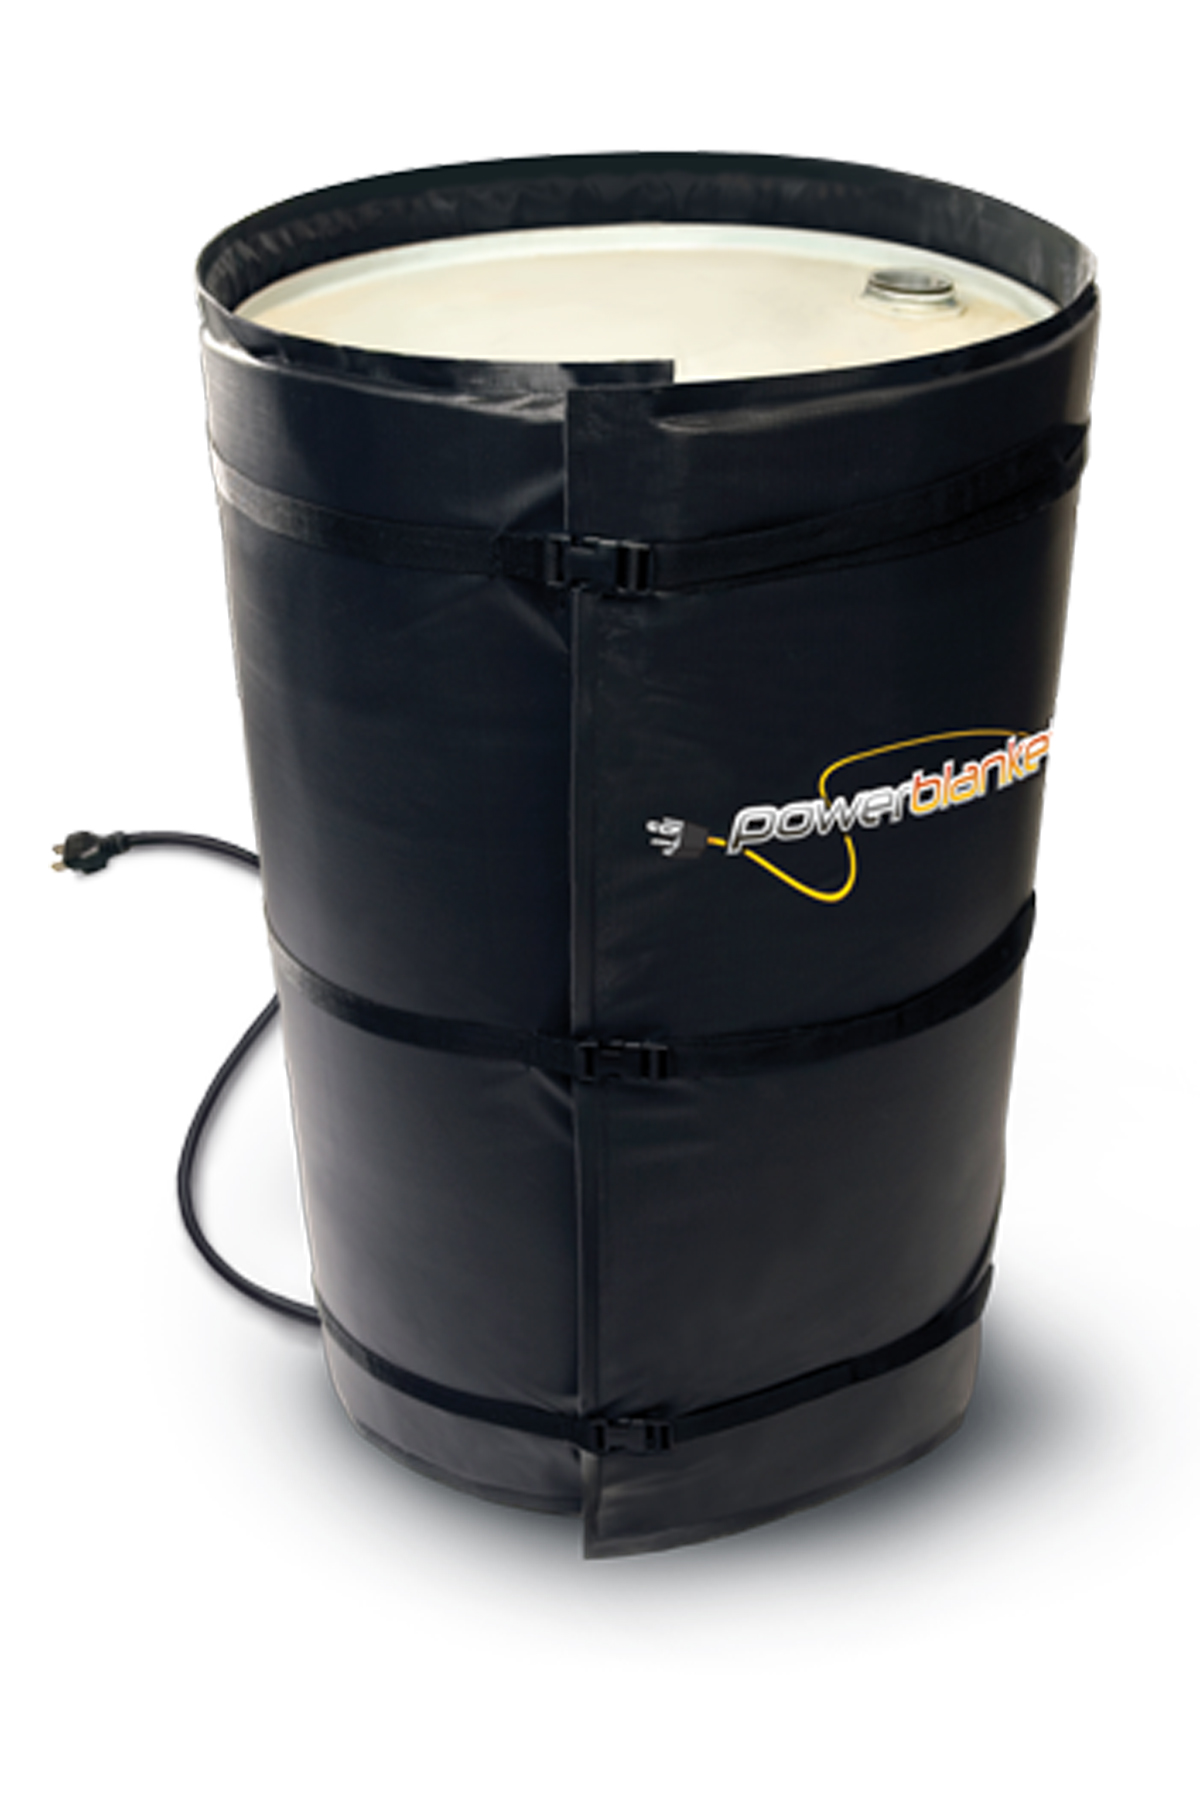 Drum Heating Jacket Heating Drums And Barrels is